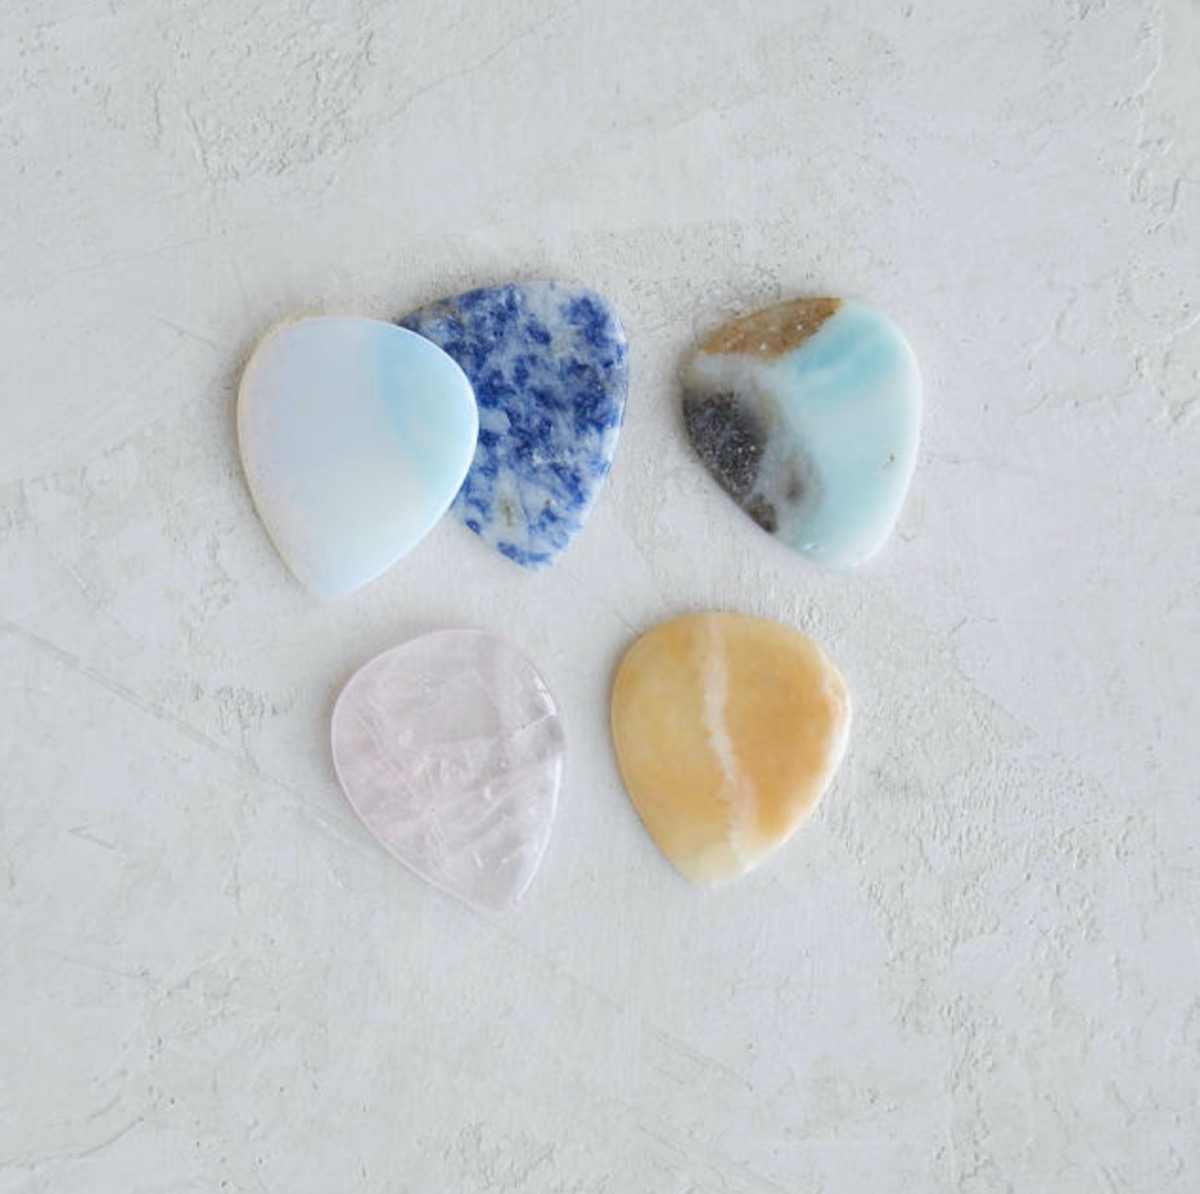 guitar picks made out of birthstones on white background